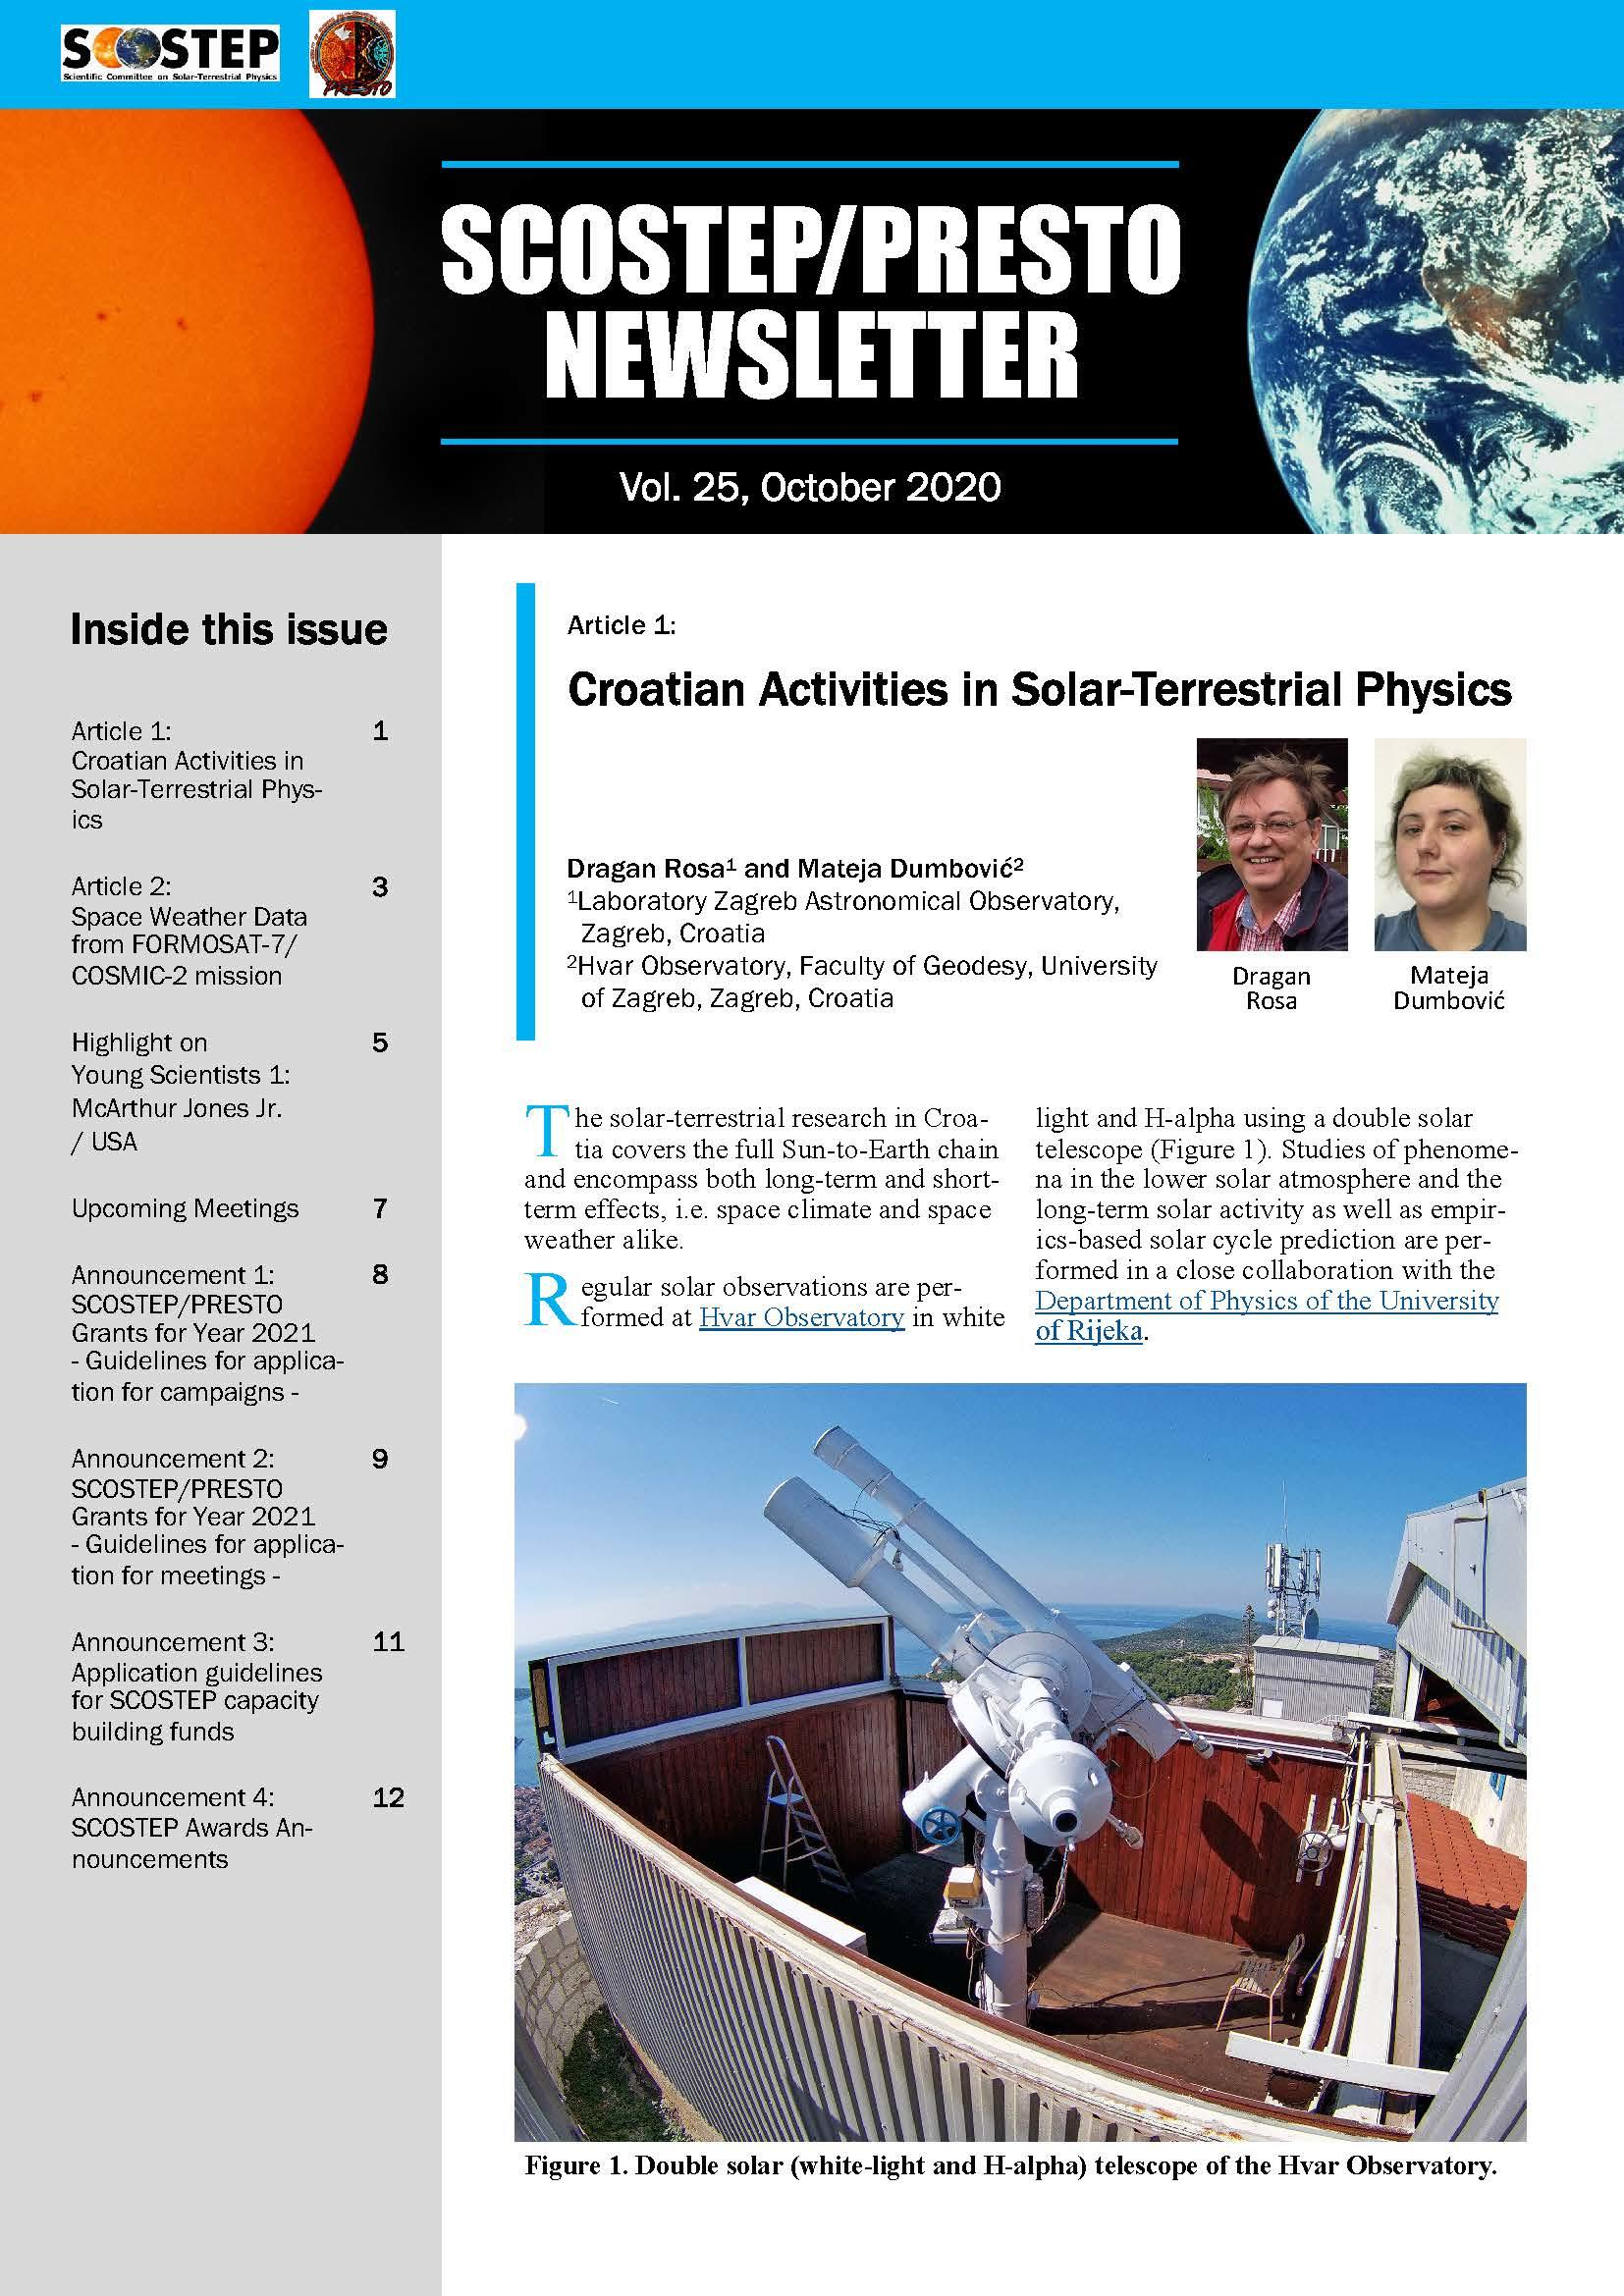 SCOSTEP_PRESTO_Newsletter_Vol25_high_reso_01.jpg